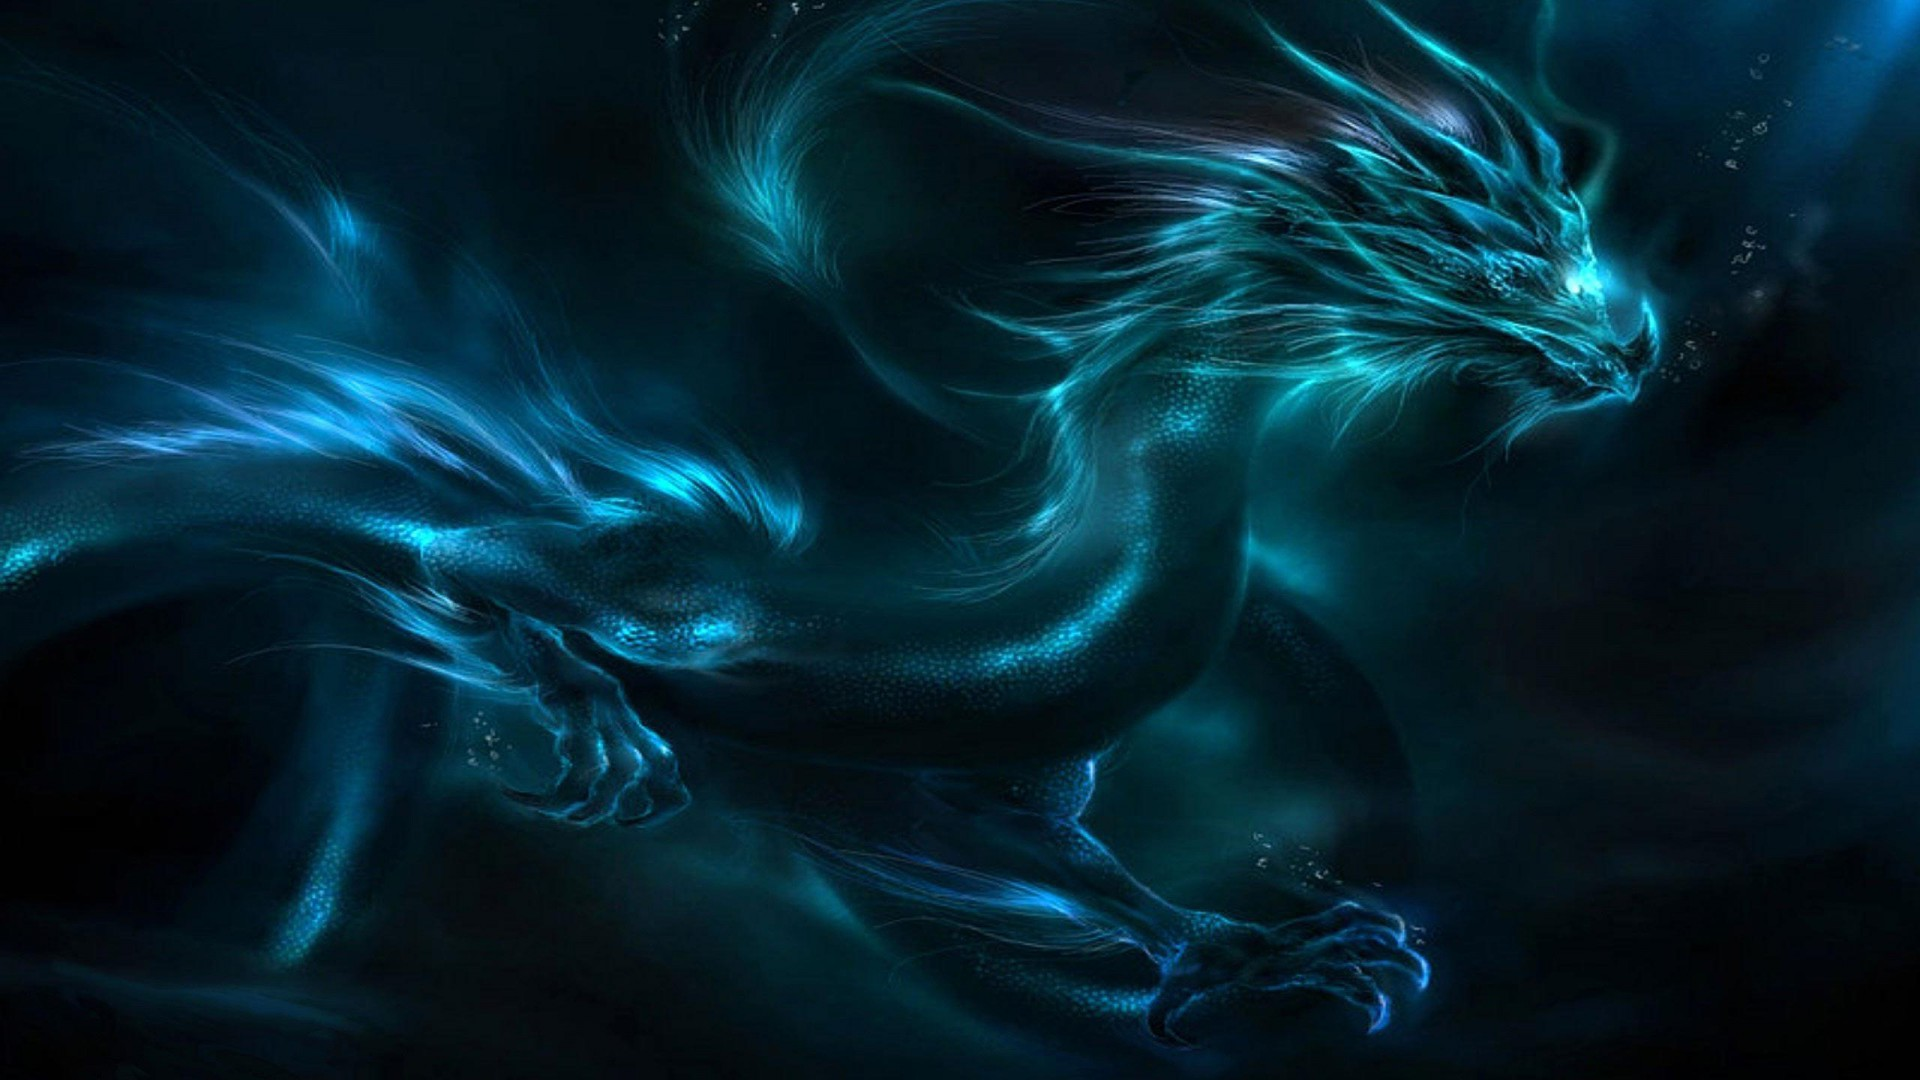 Fantasy Blue Dragon Wallpaper